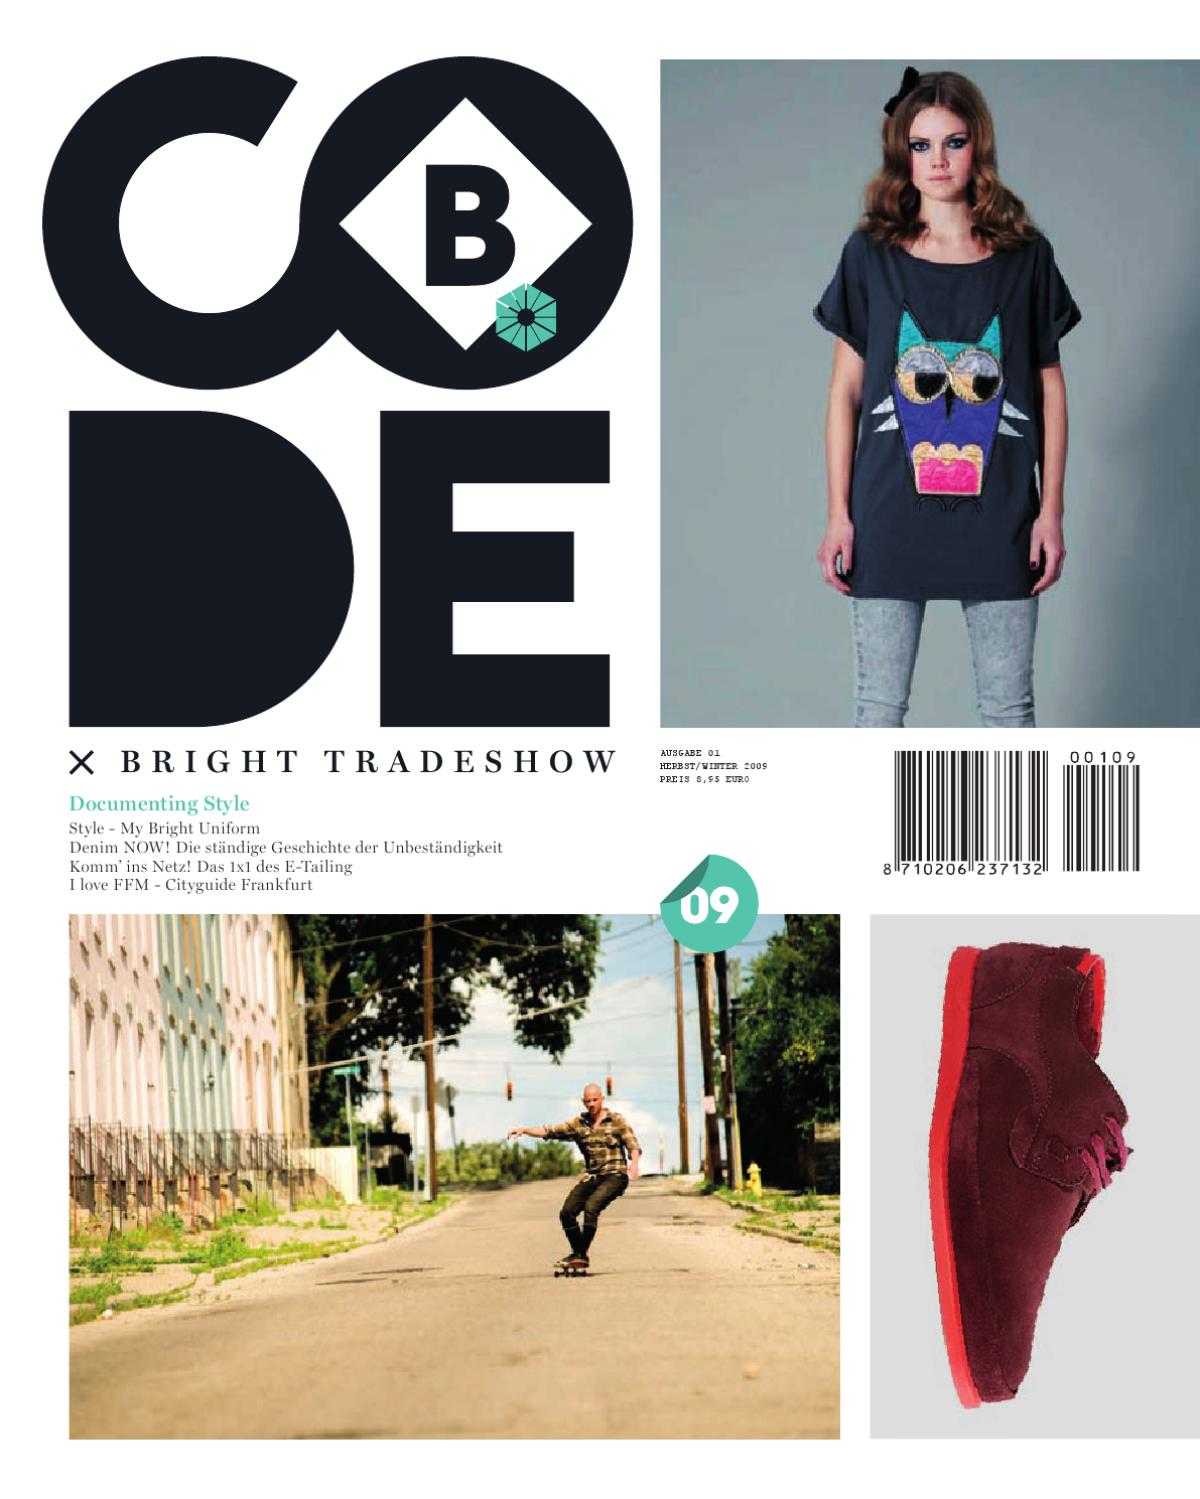 CODE xBright by Supertroopers CV issuu